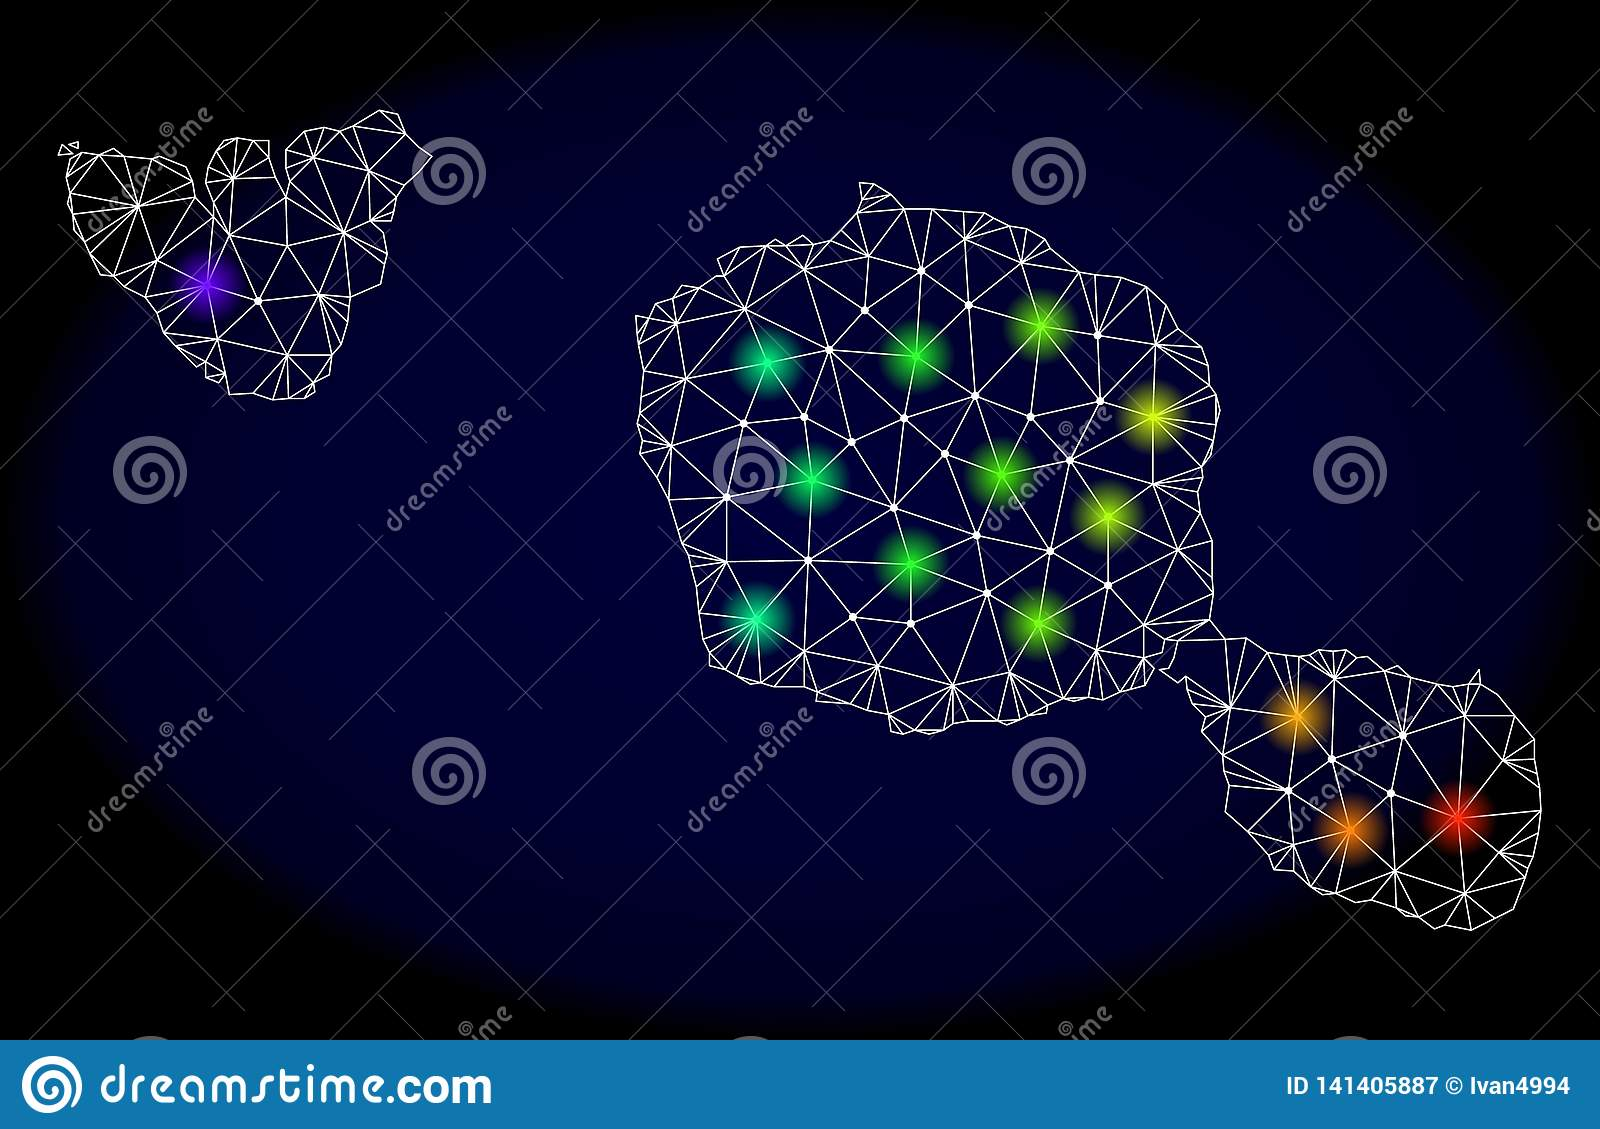 Polygonal Network Mesh Map Of Tahiti And Moorea Islands With ...